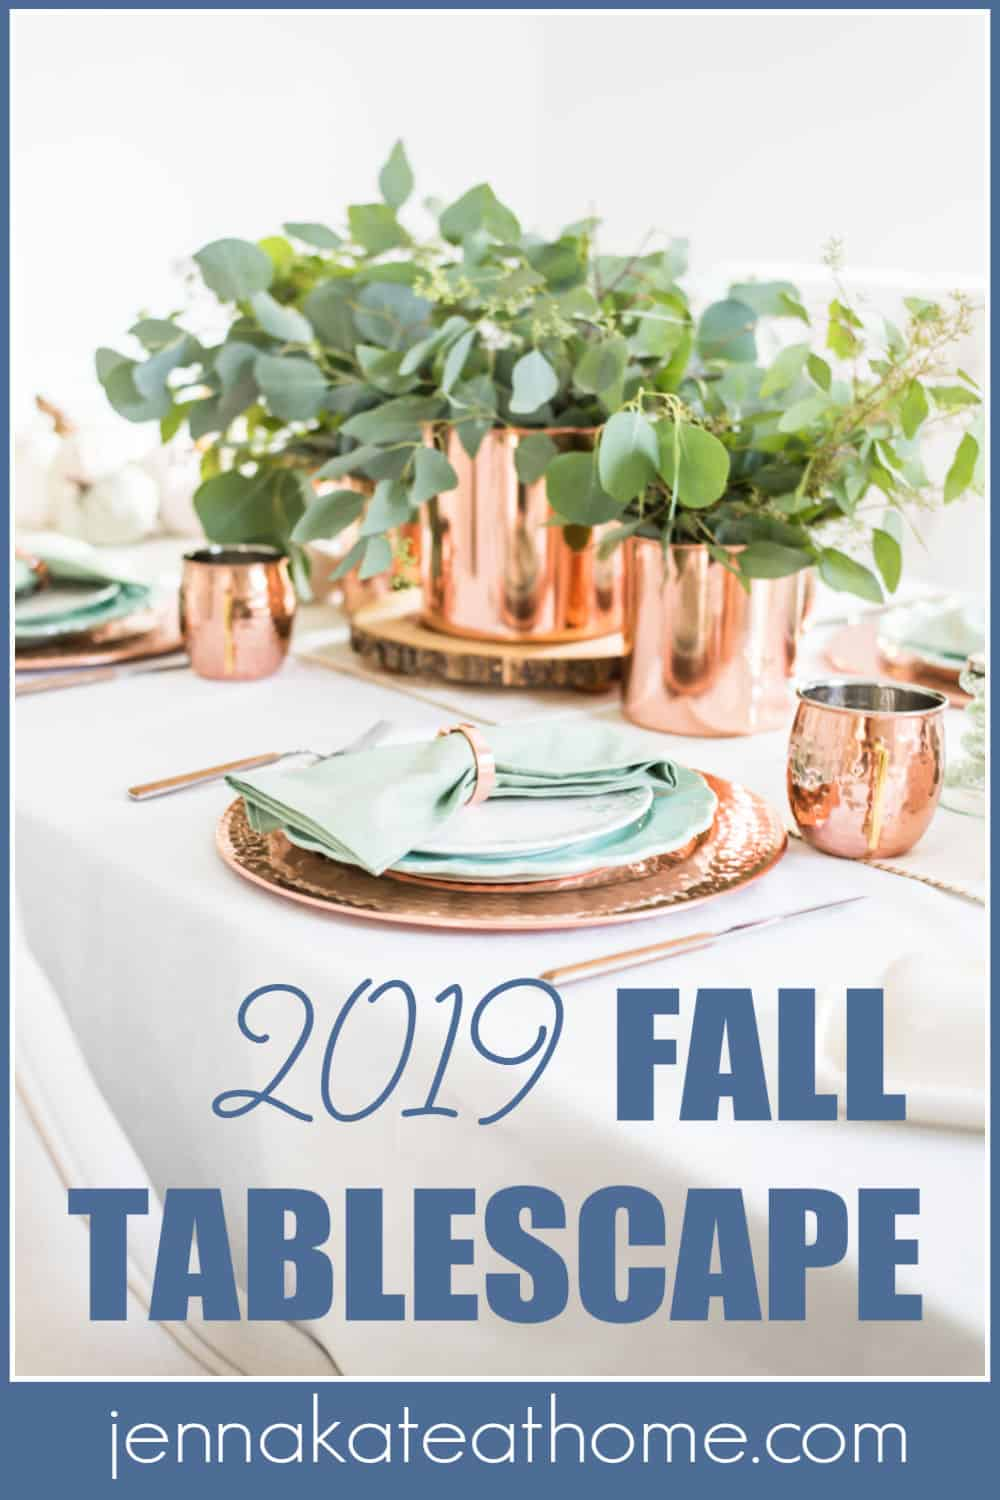 2019 fall table setting Pinterest